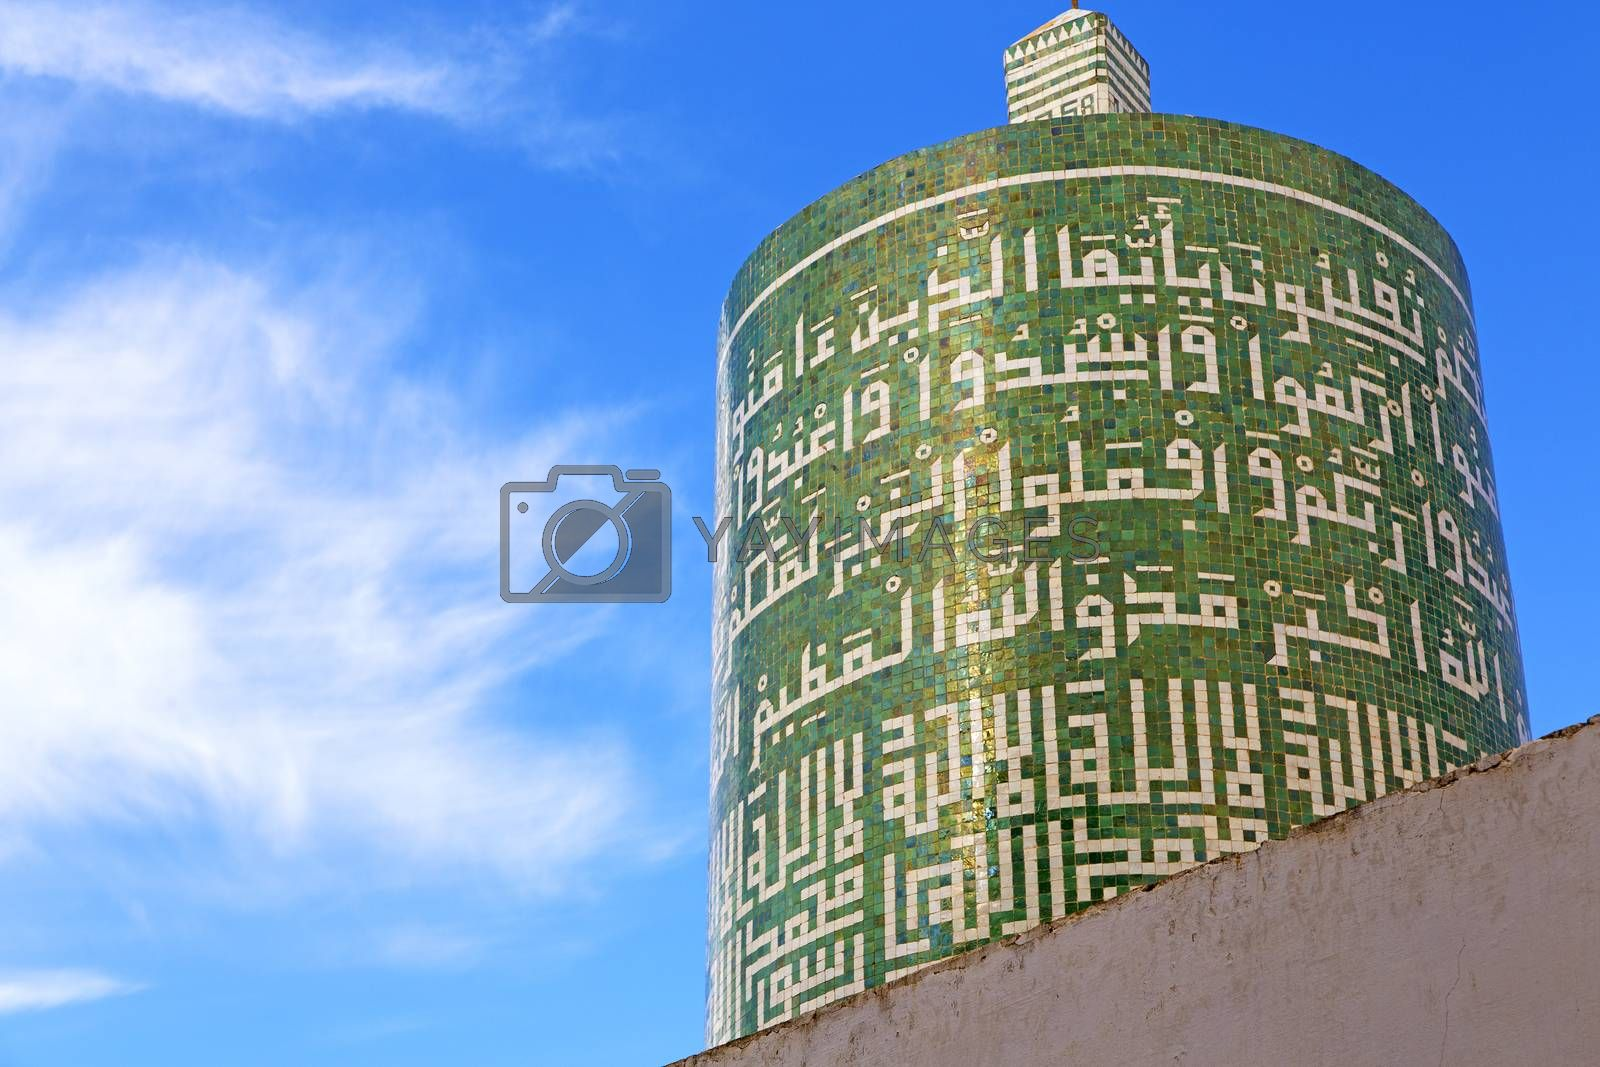 muslim  mosque    history  symbol  in  religion and  blue    sk by lkpro